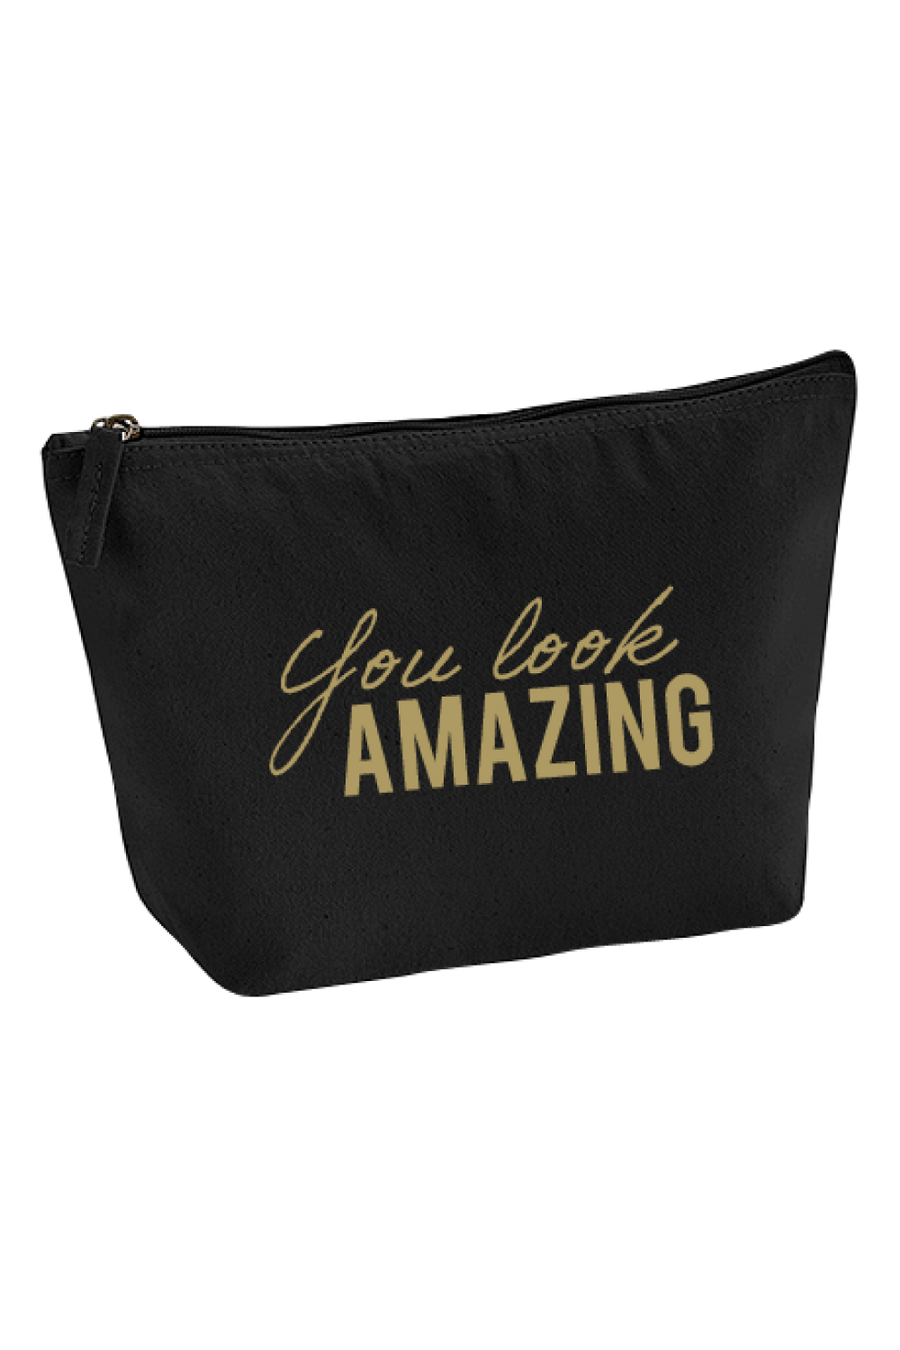 You look amazing toilettas - Joh Clothing